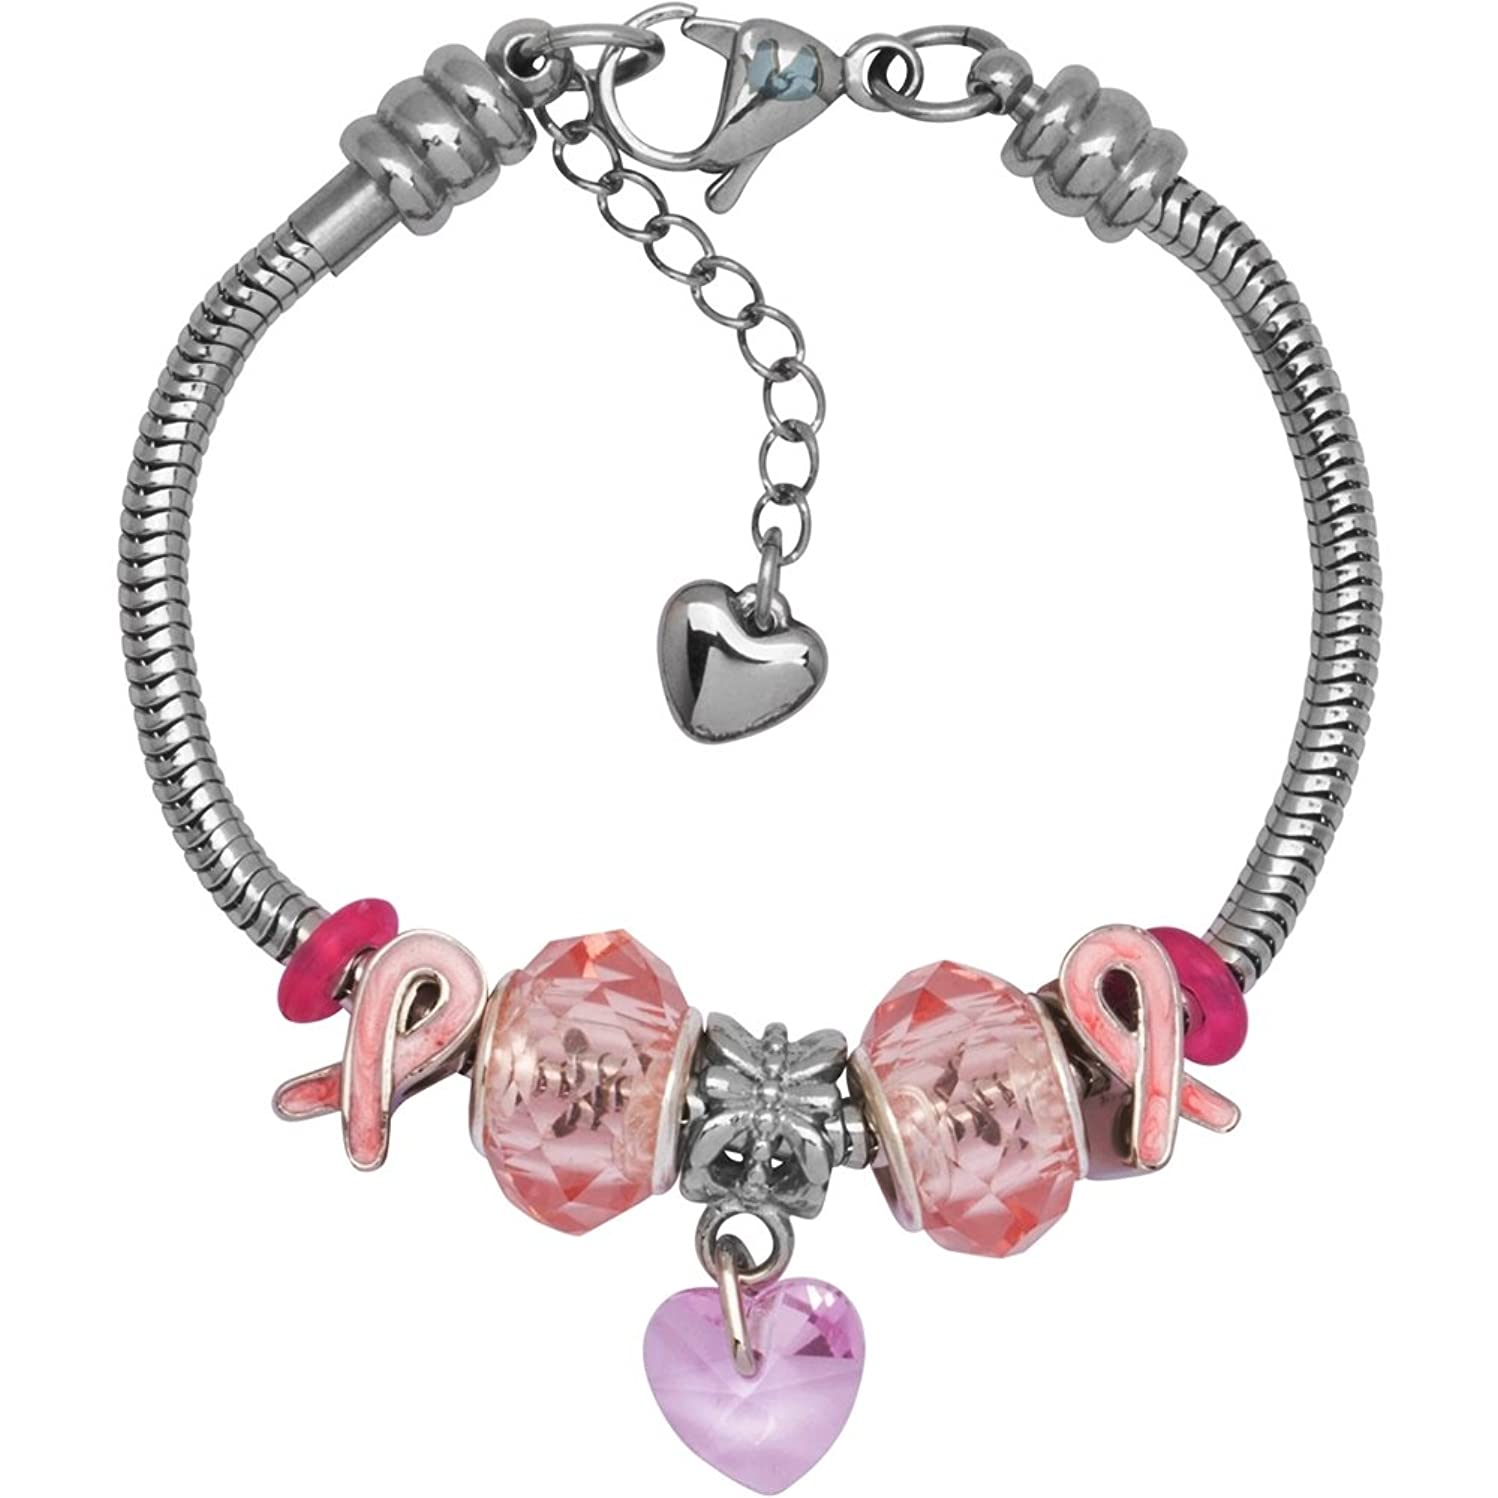 European Charm Bracelet with Bead Charms for Women, Stainless Steel Snake Chain, Pink Awareness Ribbon Heart